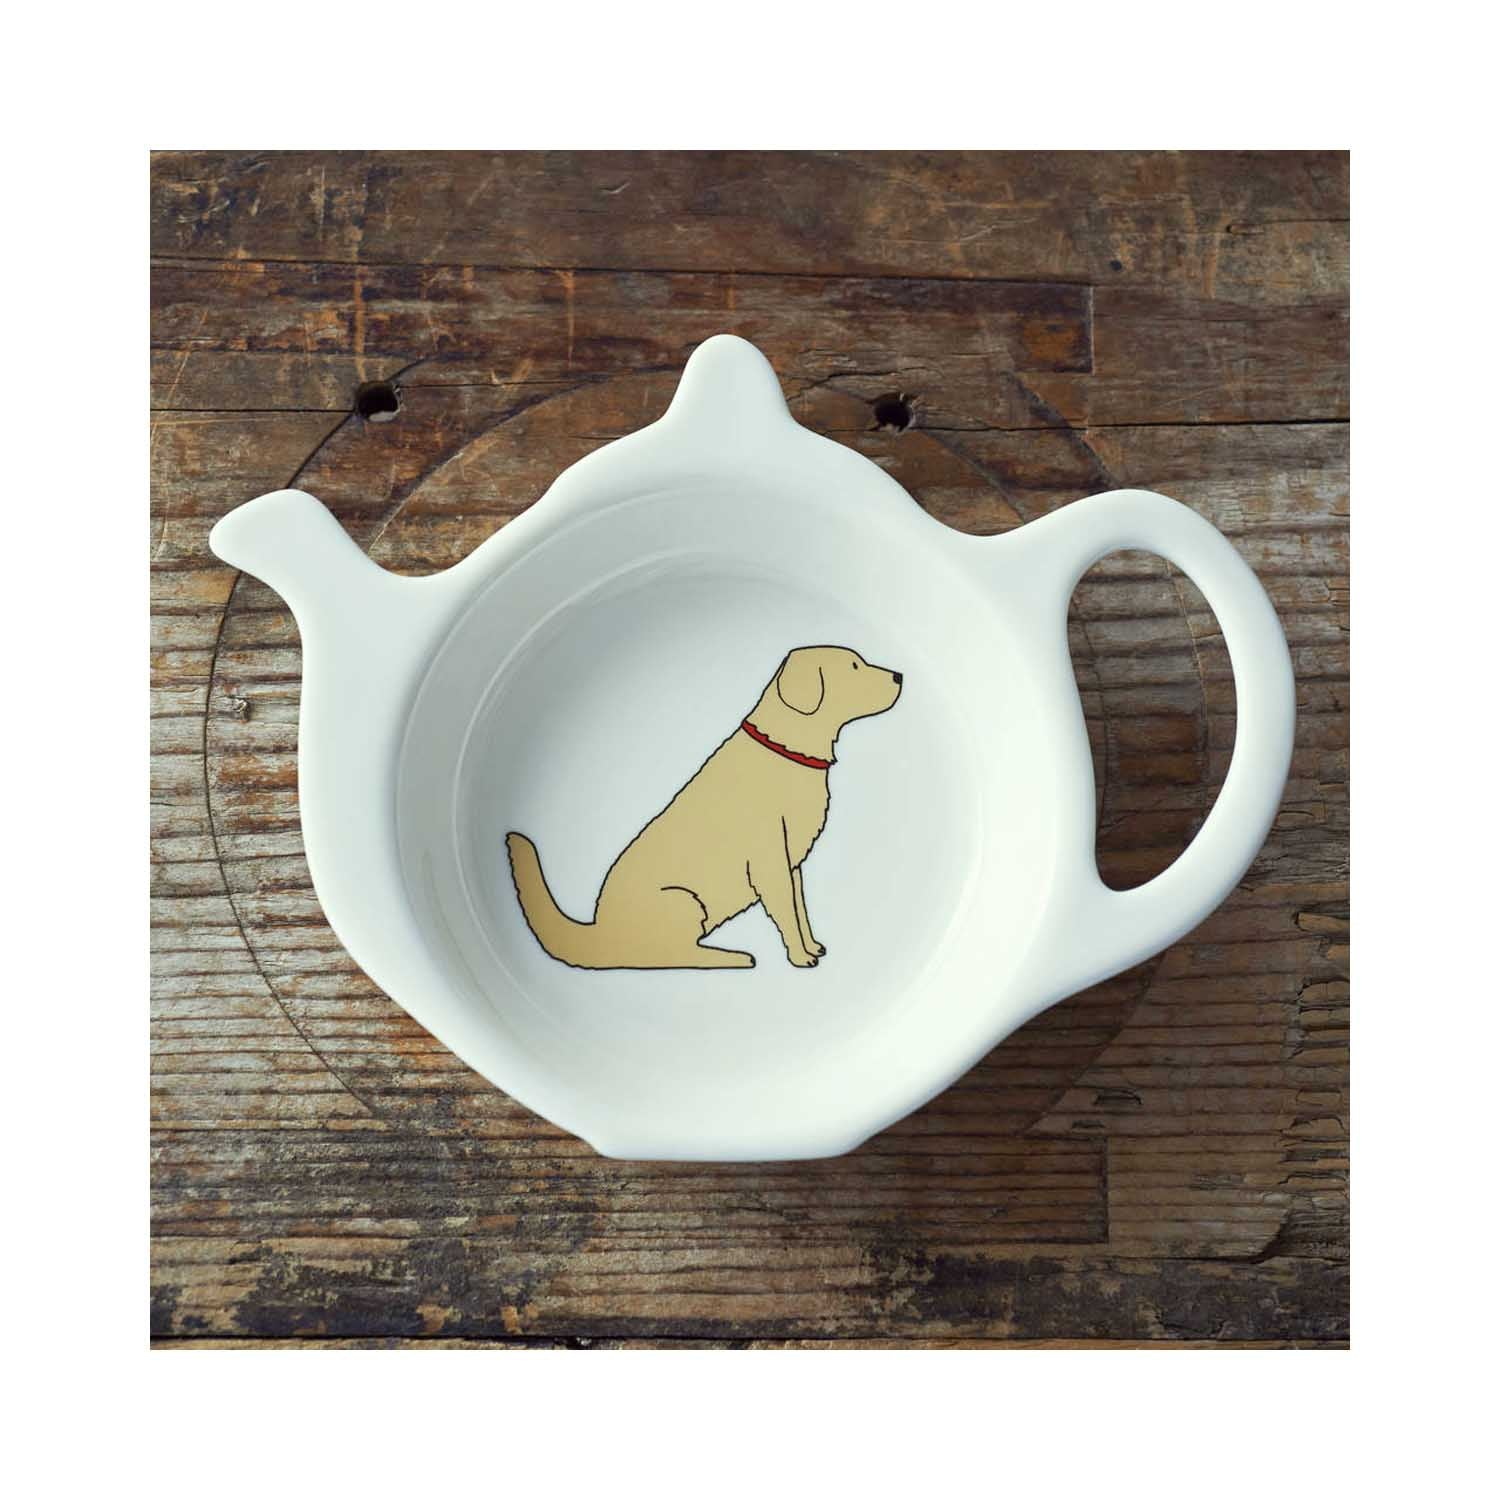 Dog Lover Gifts available at Dog Krazy Gifts - Noah The Golden Retriever  Teabag Dish - part of the Sweet William range available from www.DogKrazyGifts.co.uk